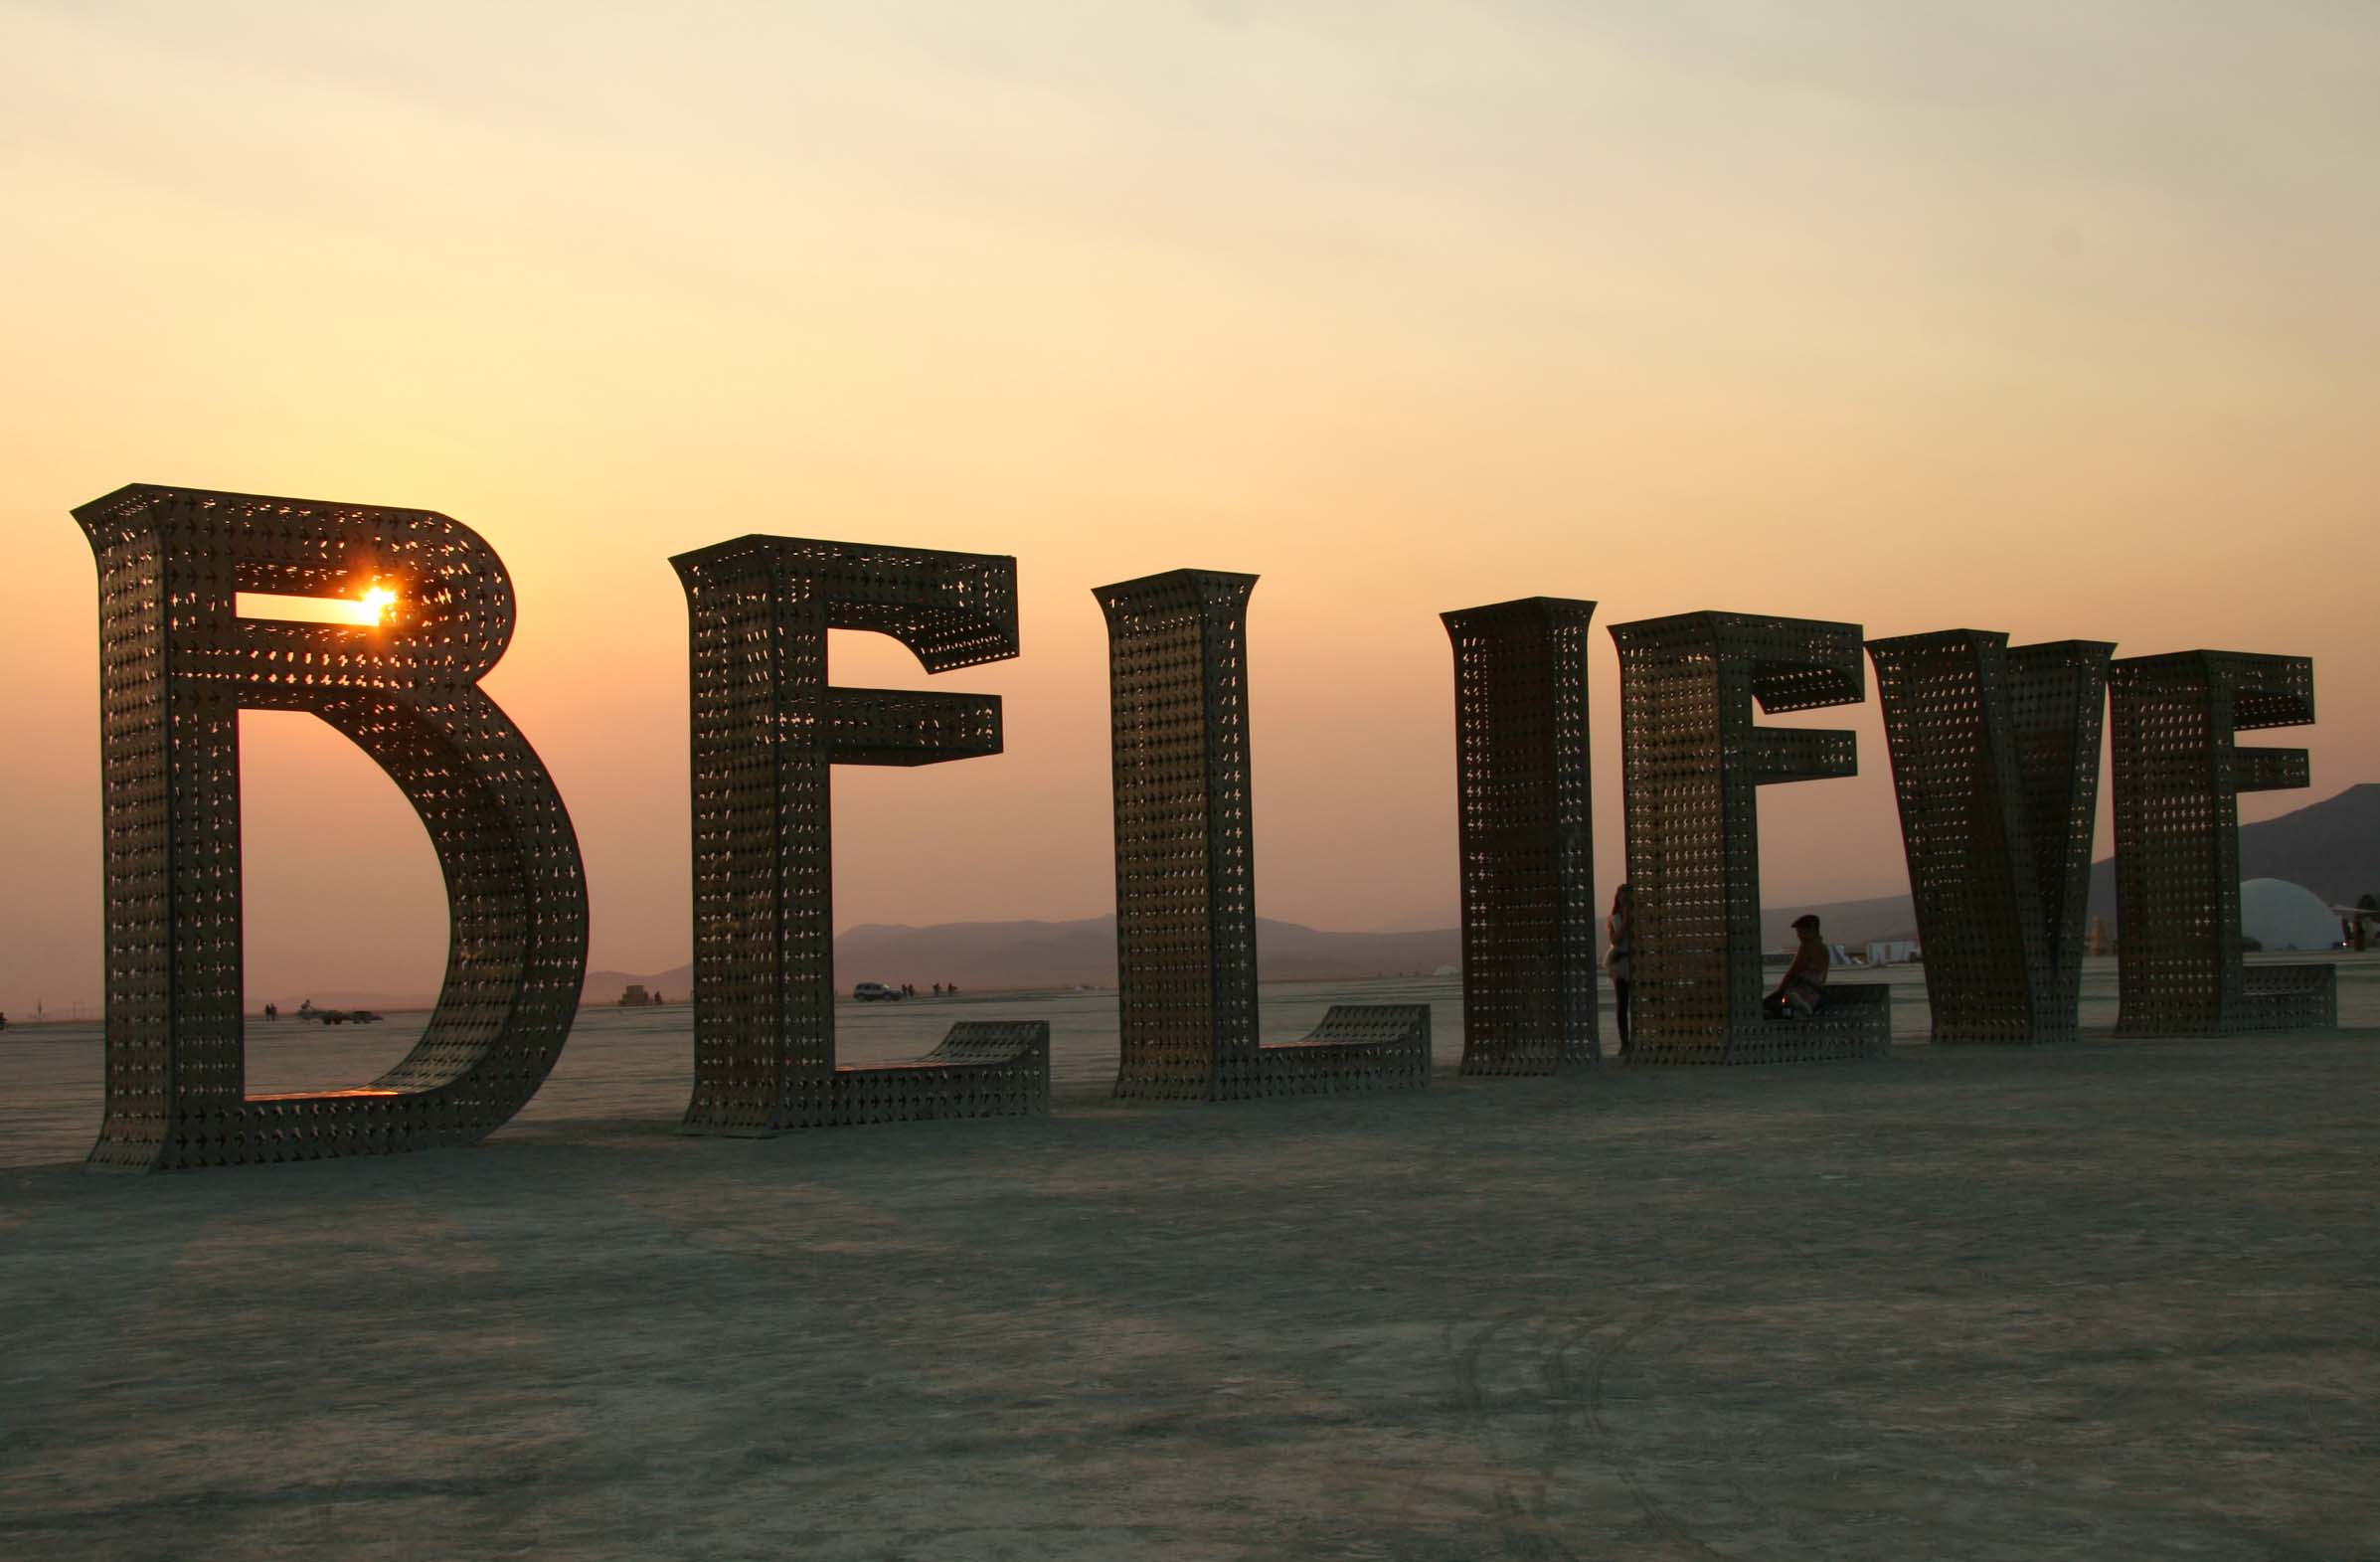 Believe sculpture at Burning Man 2013 | Wandering through ...